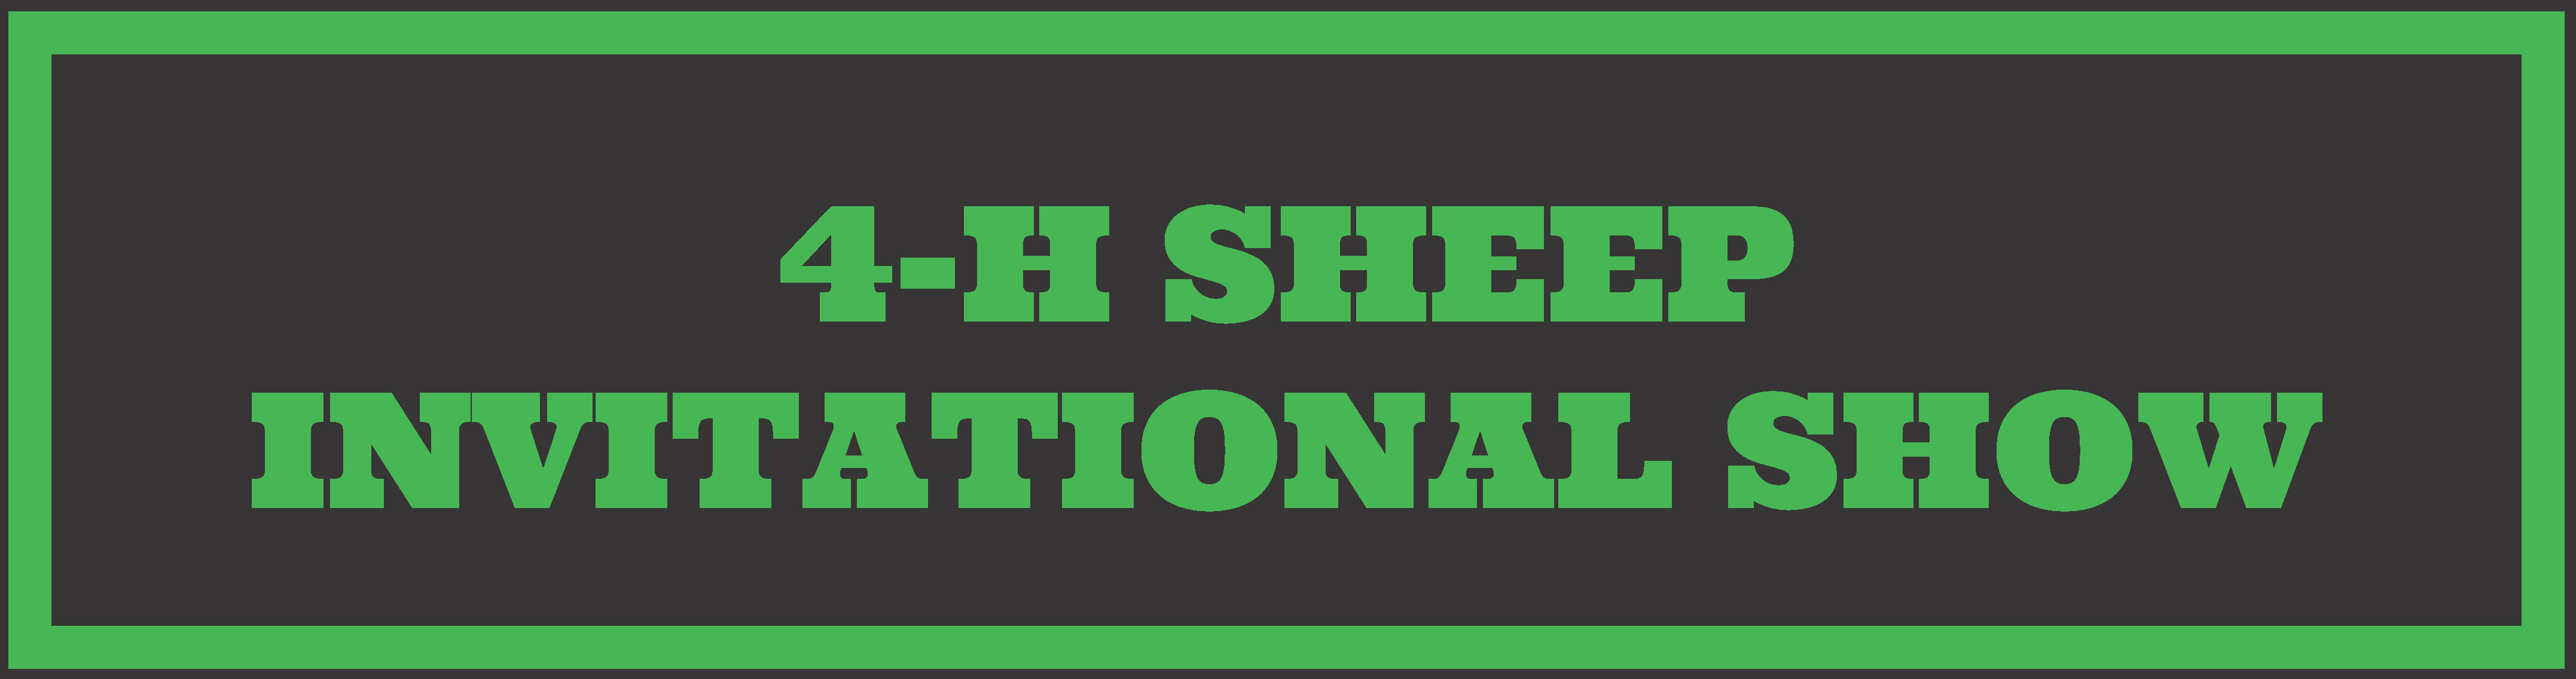 4-H SHEEP INVITATIONAL SHOW